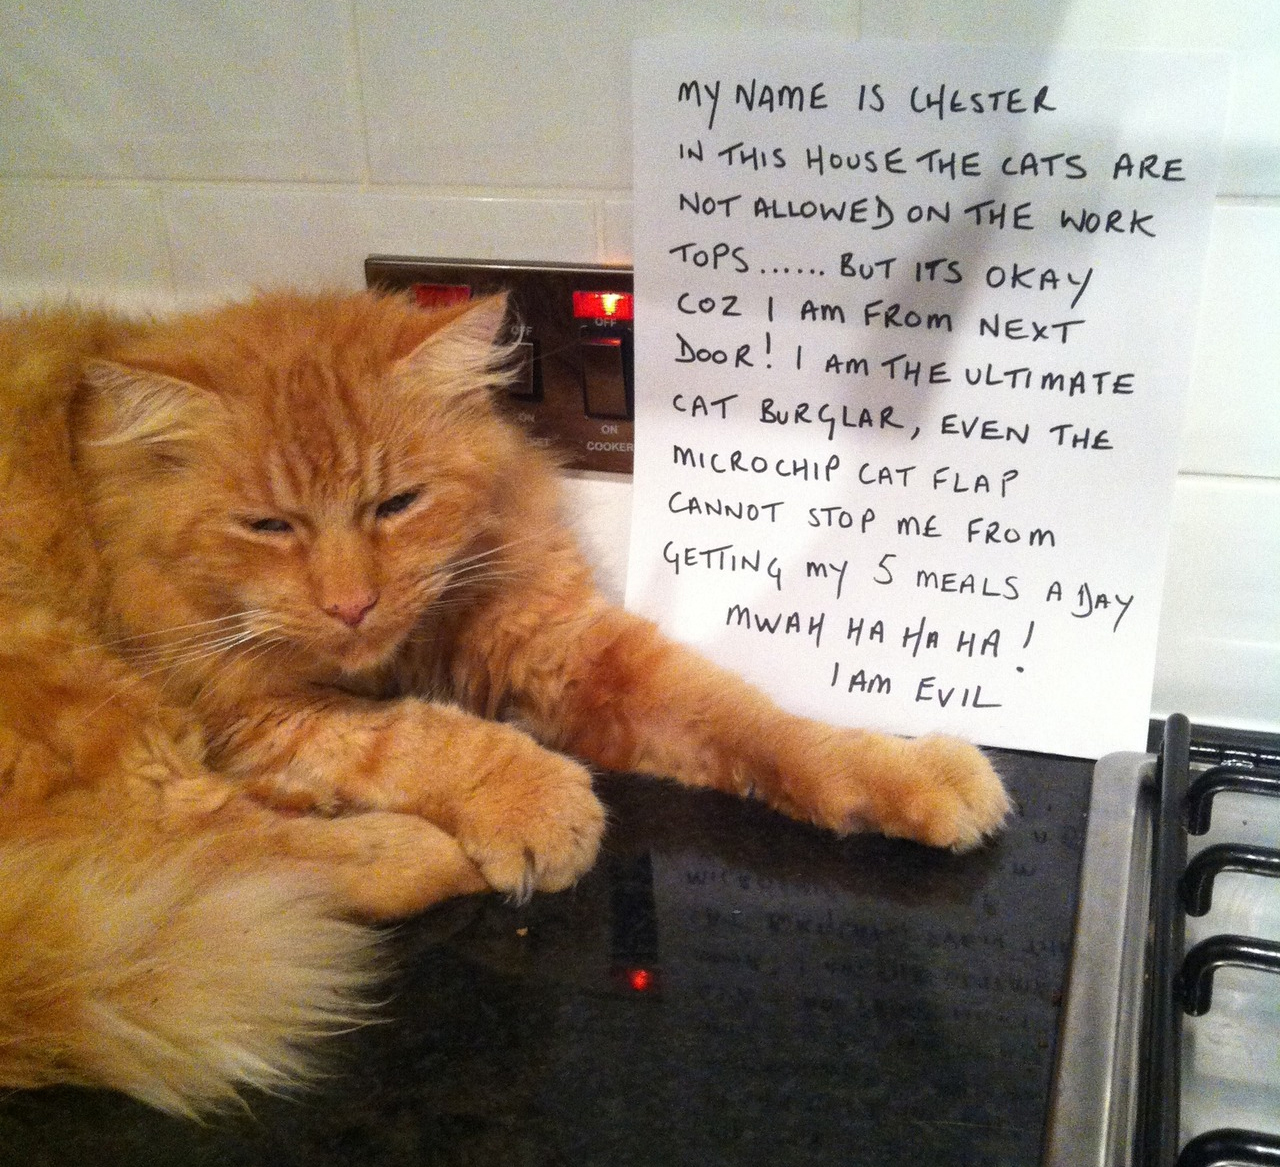 cat-shaming-my-name-is-chester-in-this-house-the-cats-are-not-allowed ...